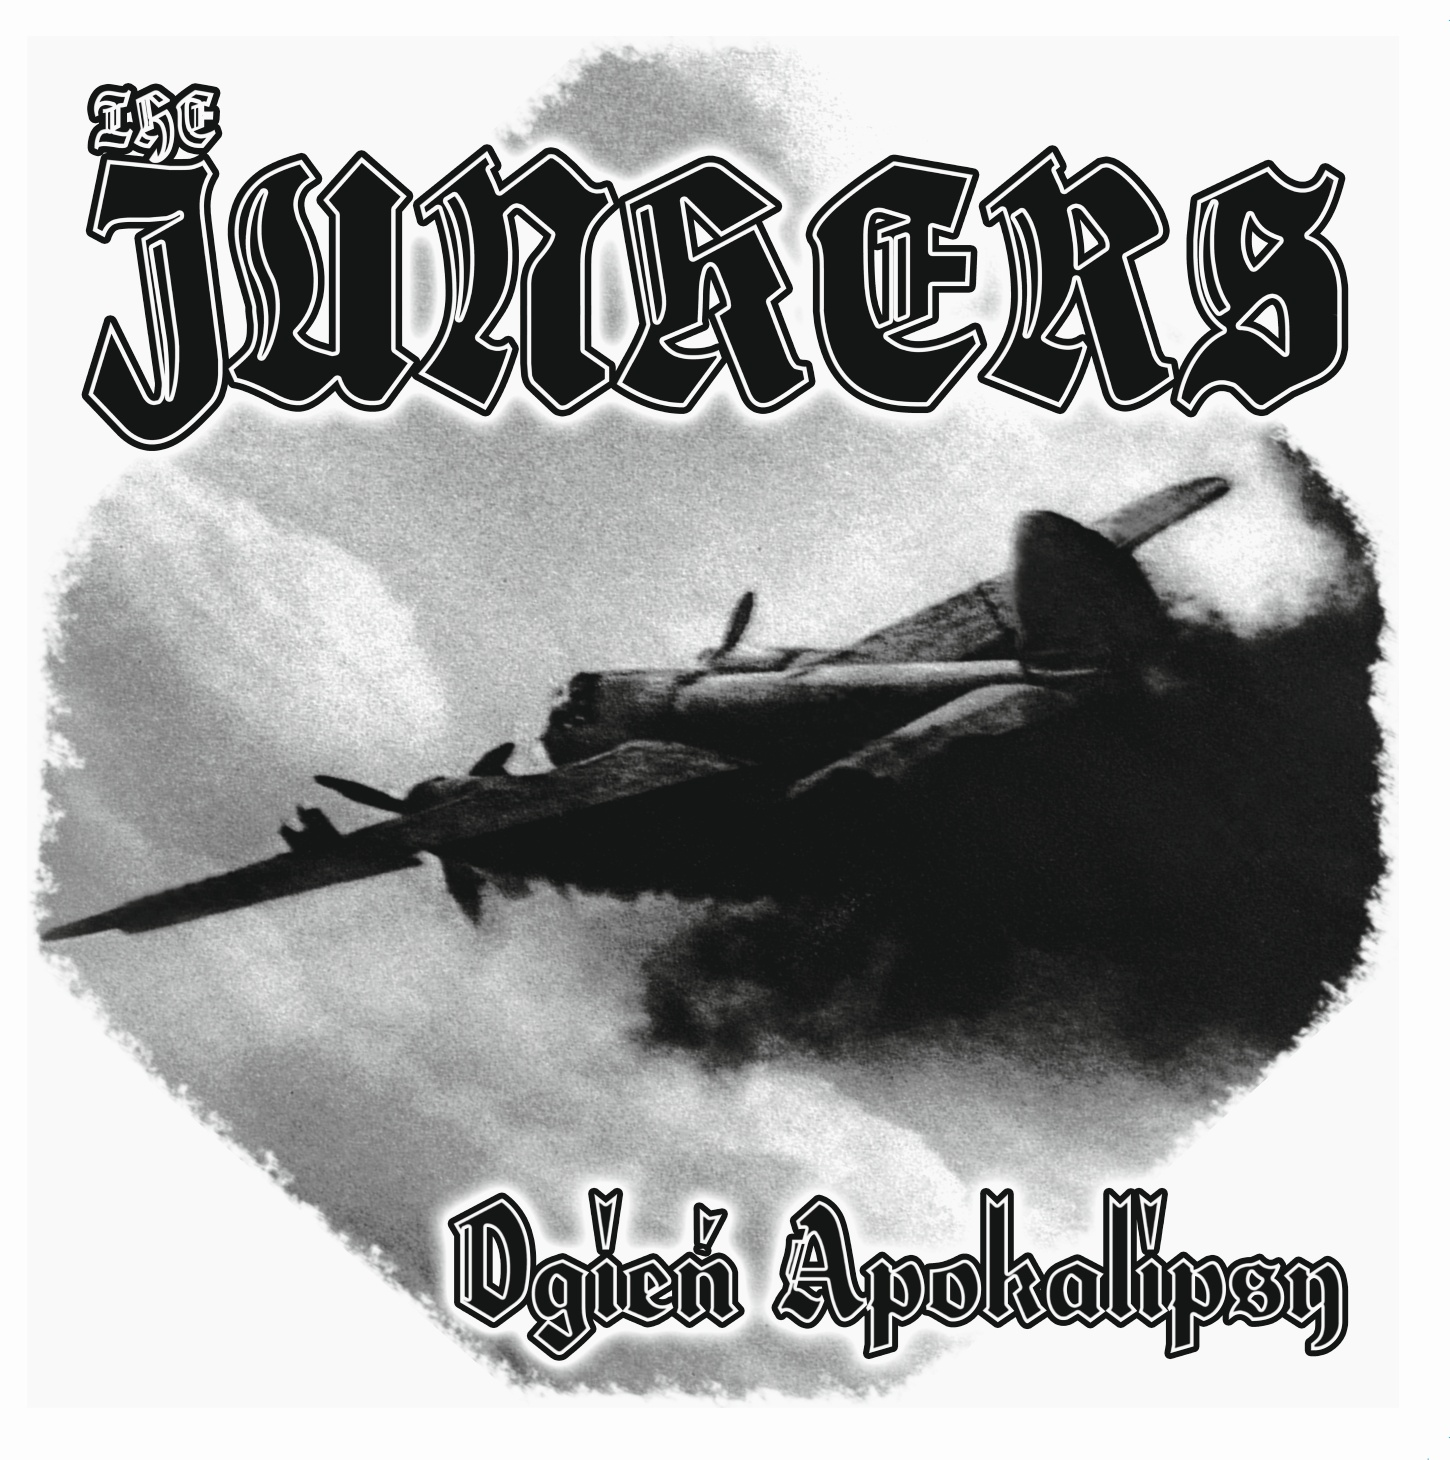 The Junkers - OGIE? APOKALIPSY CD